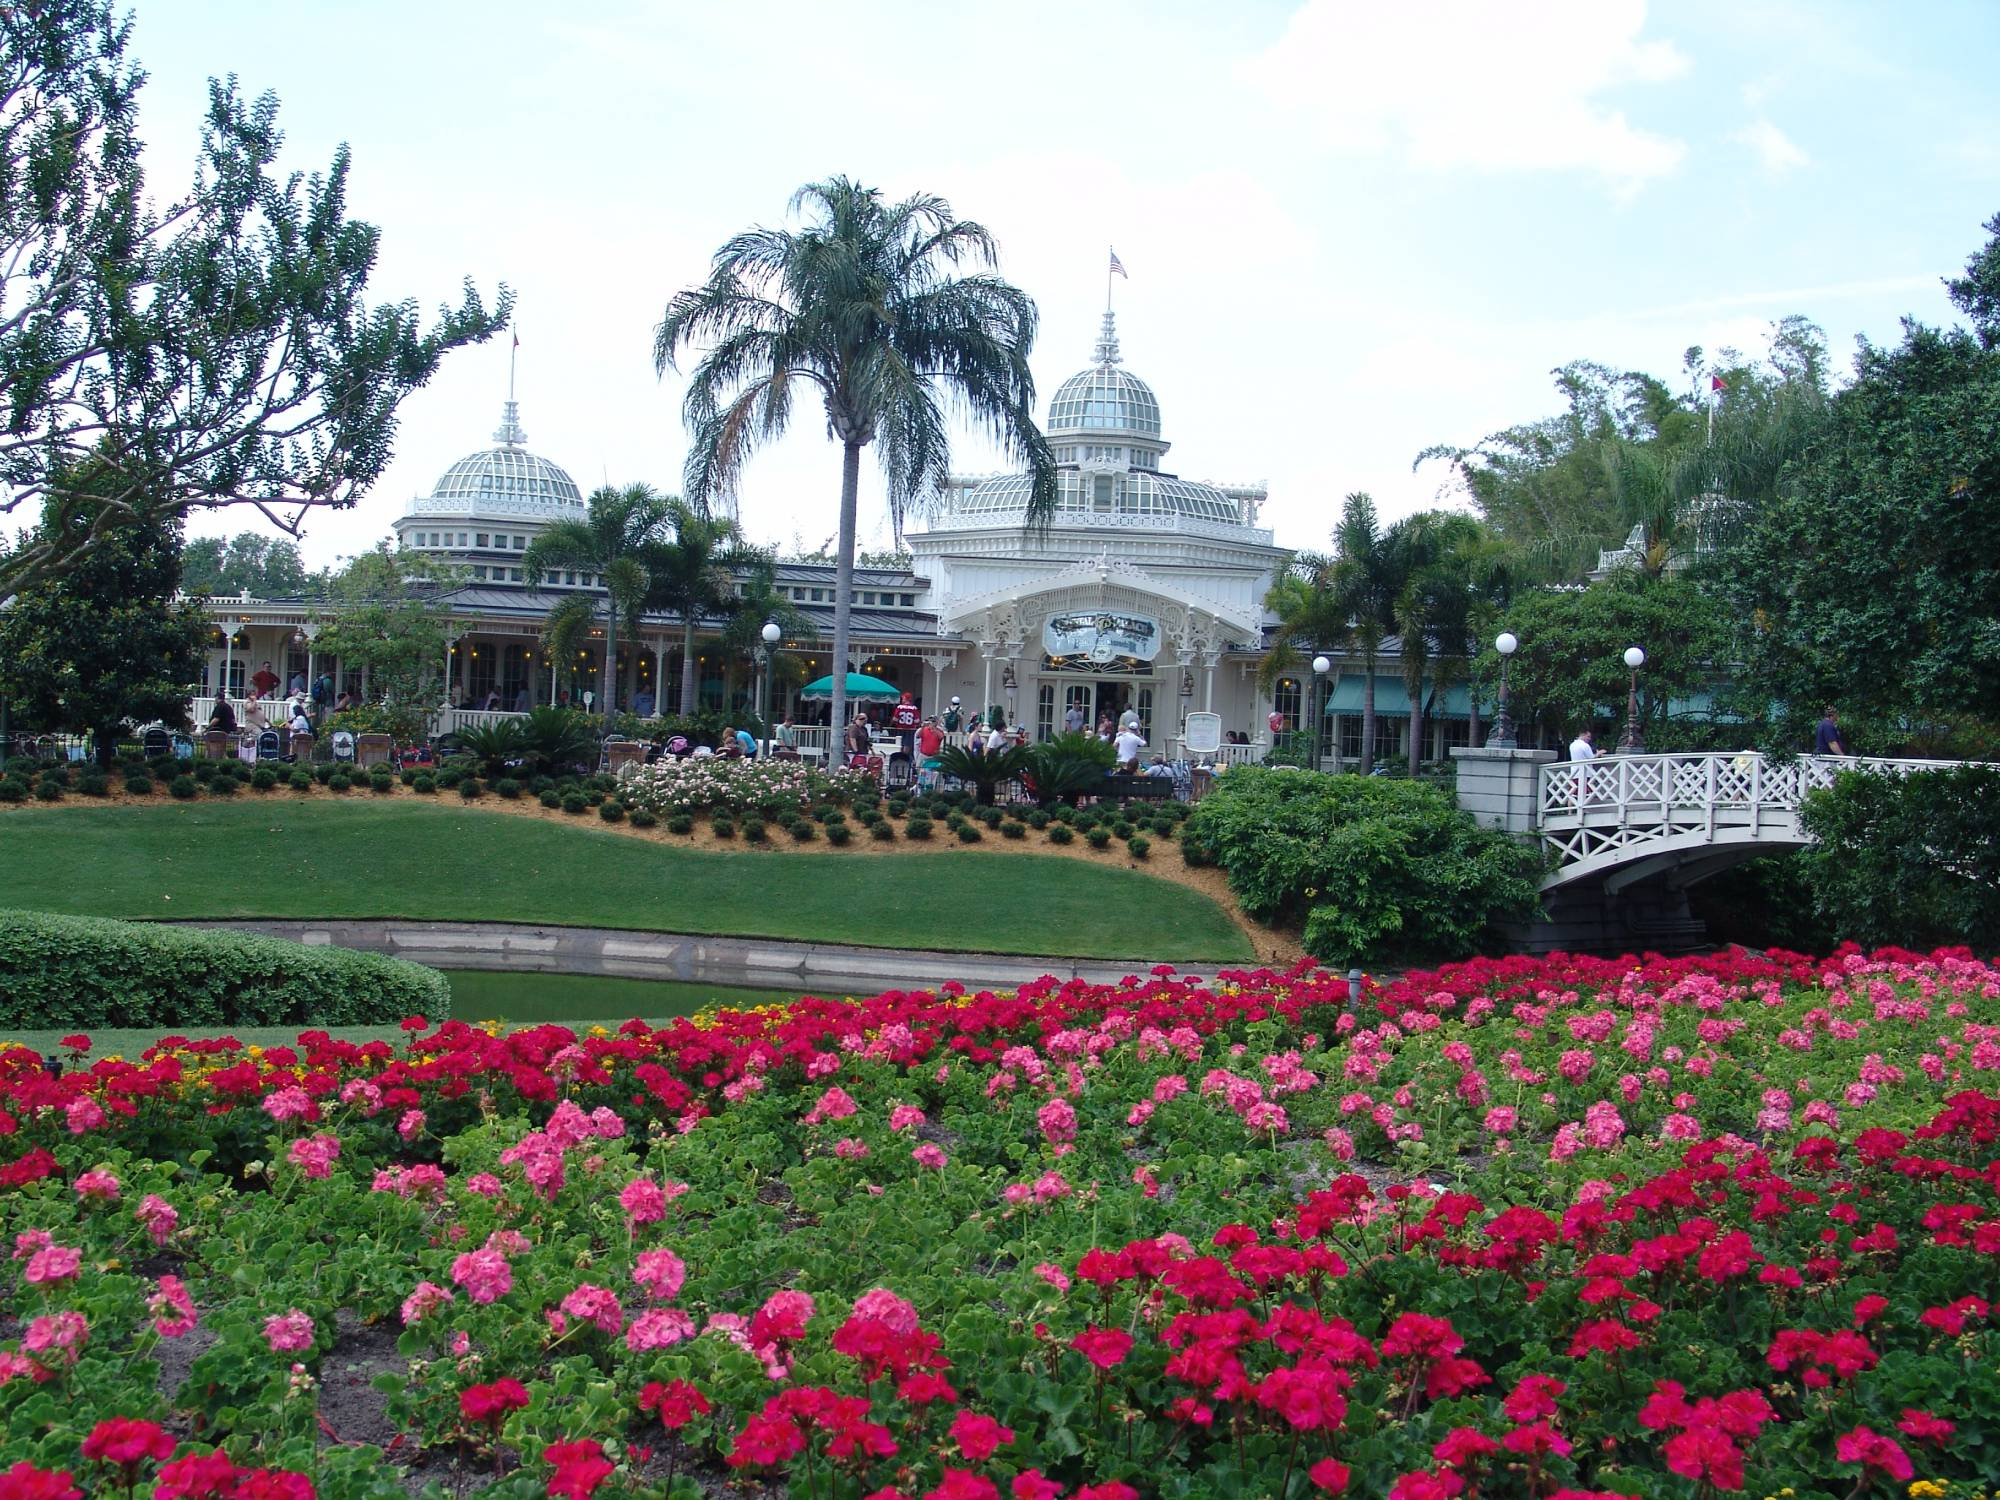 See the Magic Kingdom from a different view  PassPorter.com